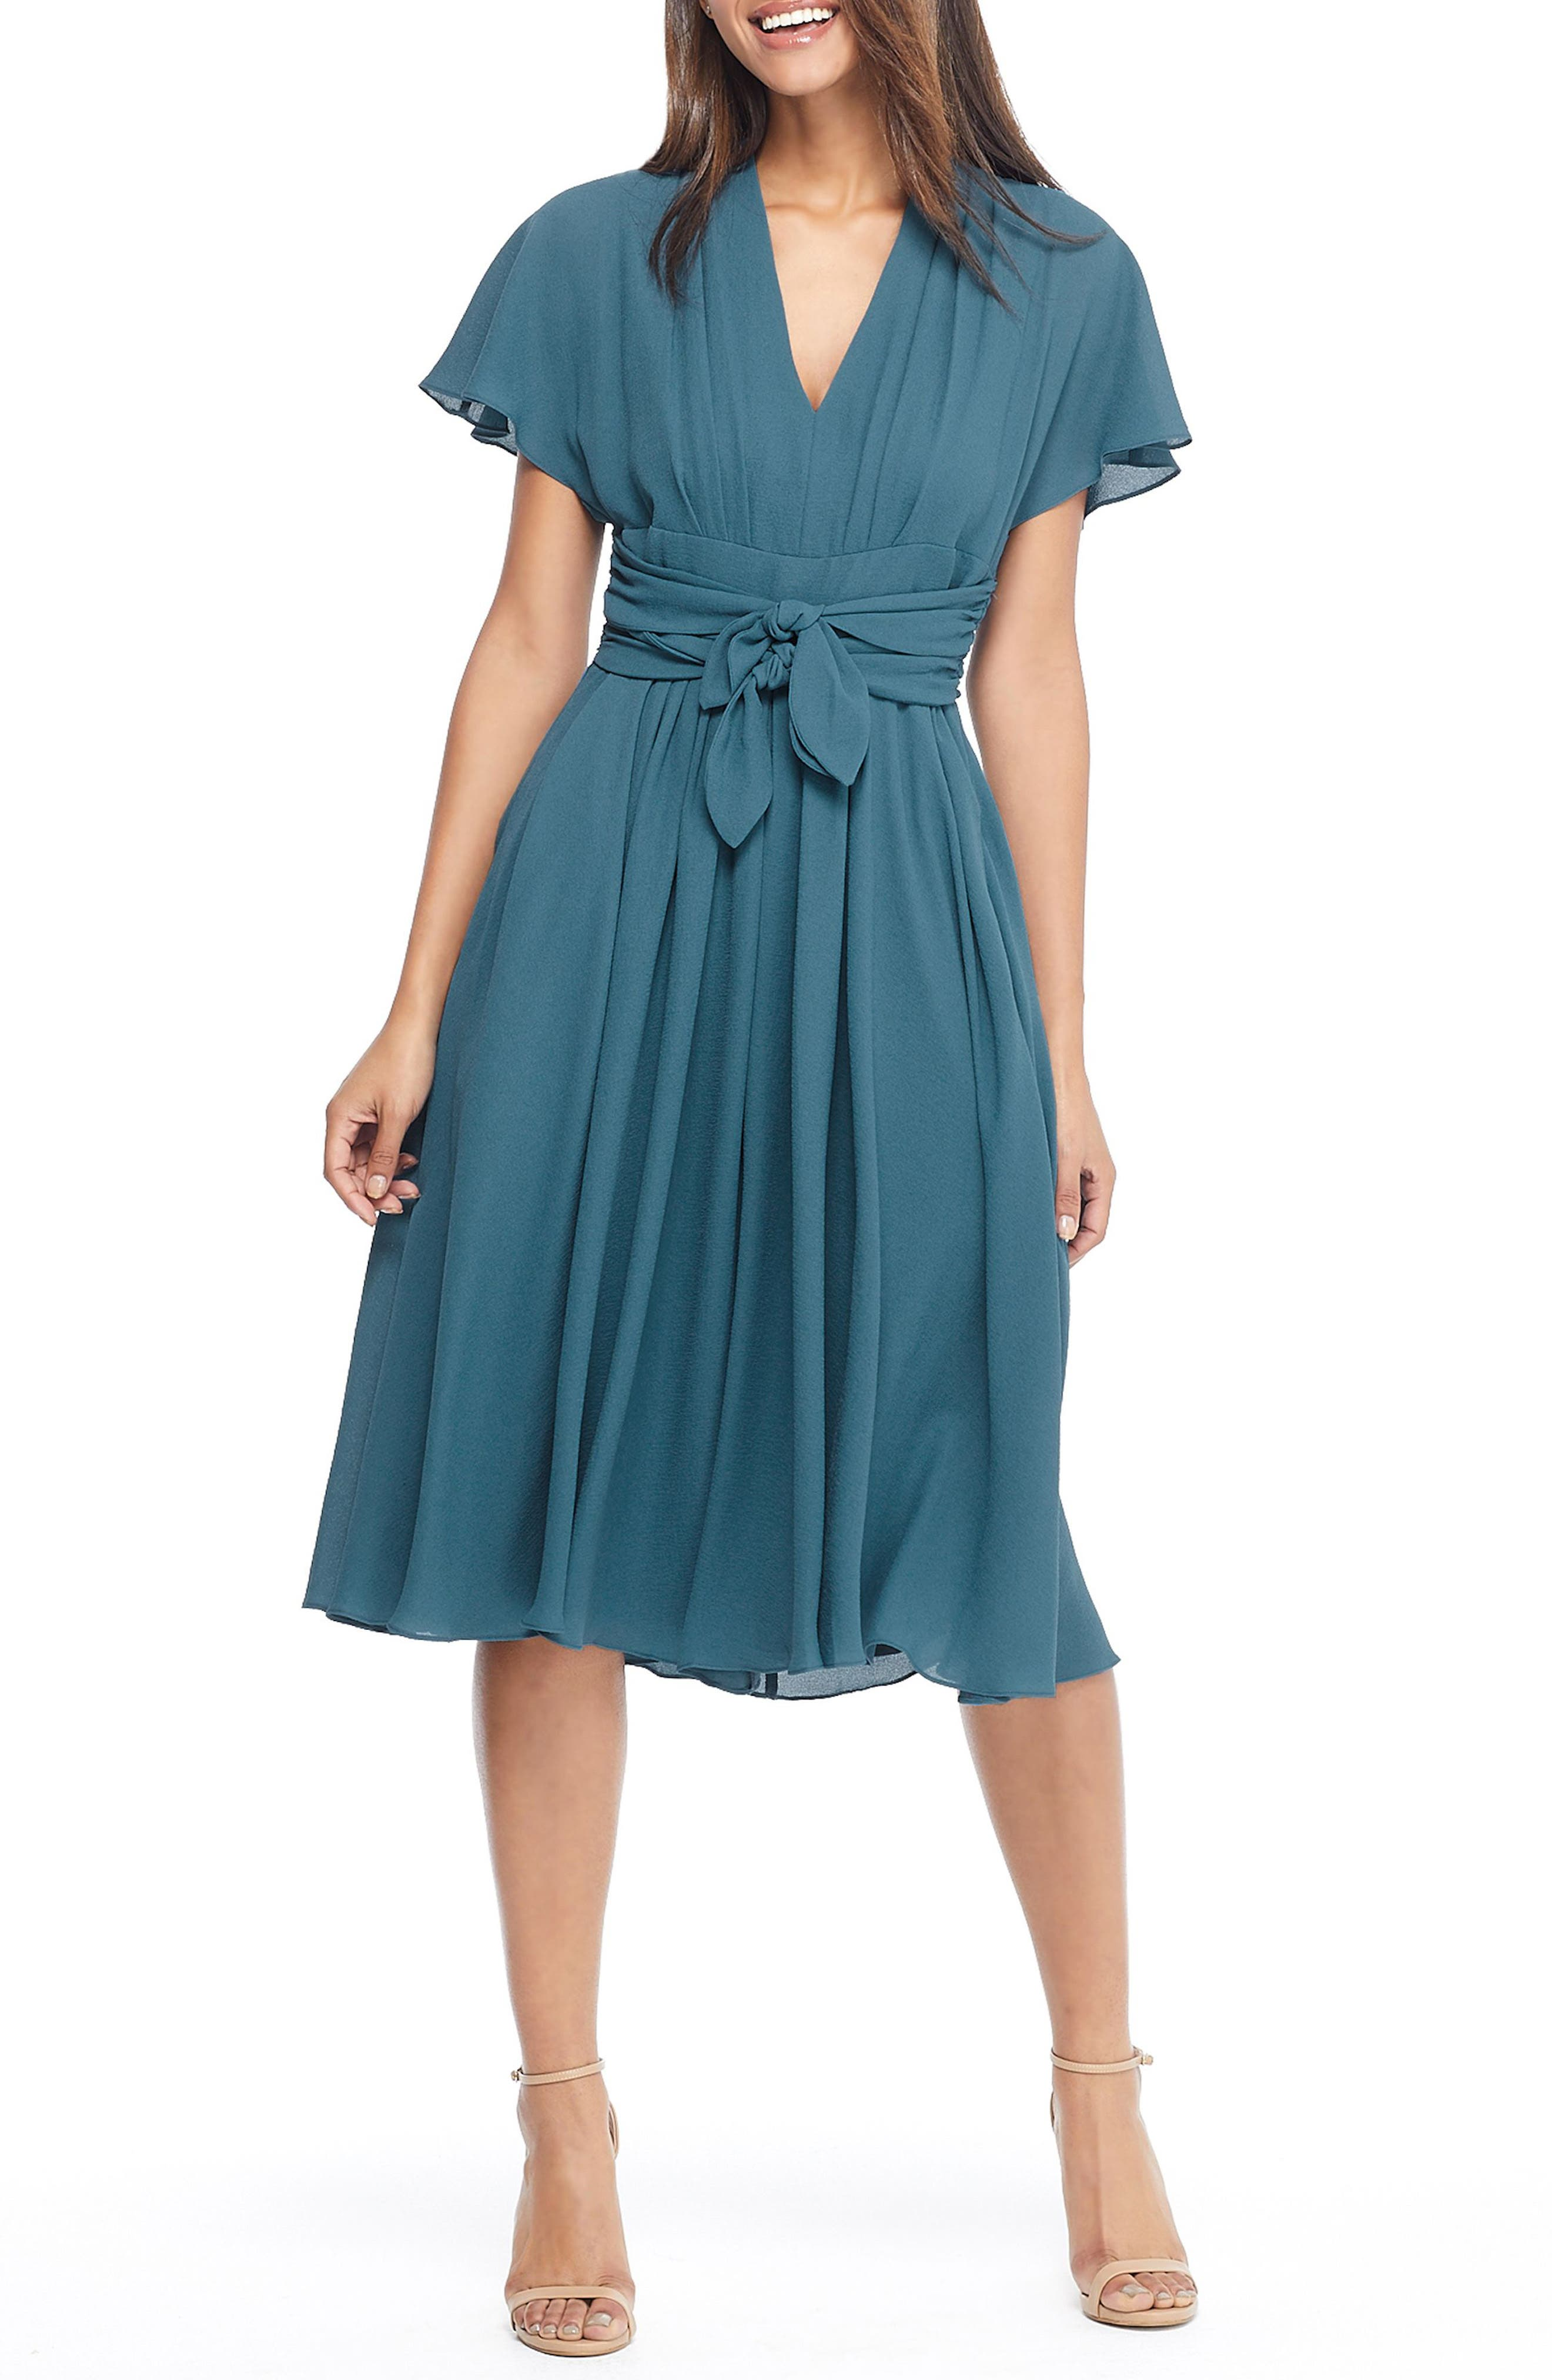 Gal Meets Glam Collection Jane Tie Waist Midi Dress, 8 (similar to 1) - Blue